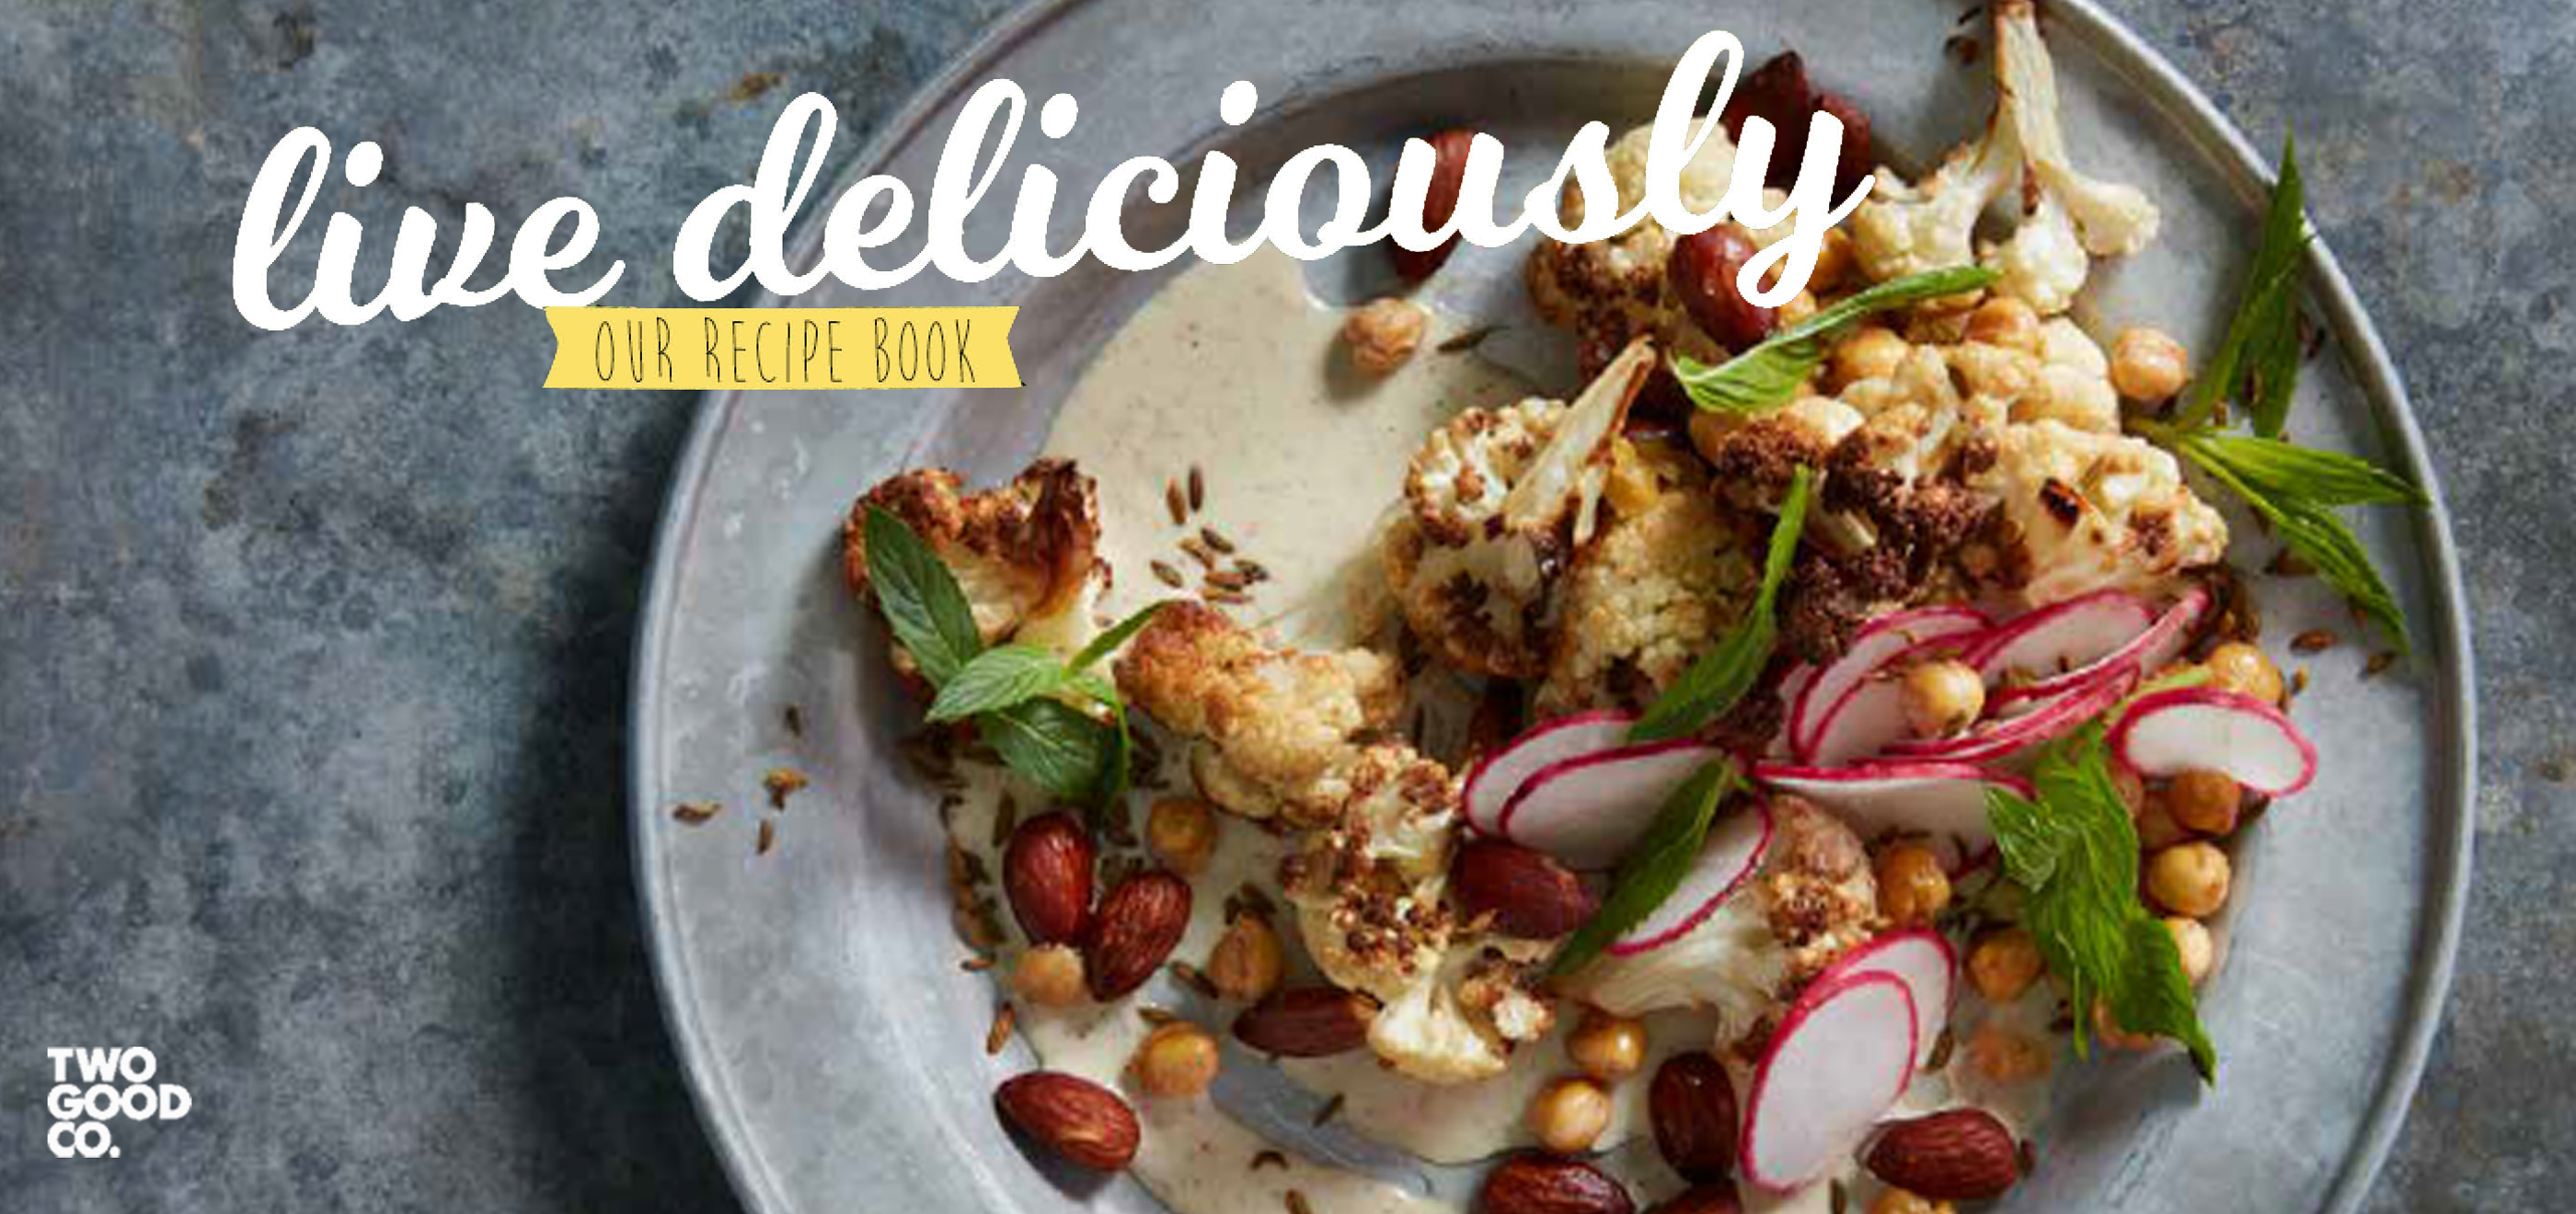 Two Good Winter_Recipes_2020_Live Delicously Large Lower Homepage Banner